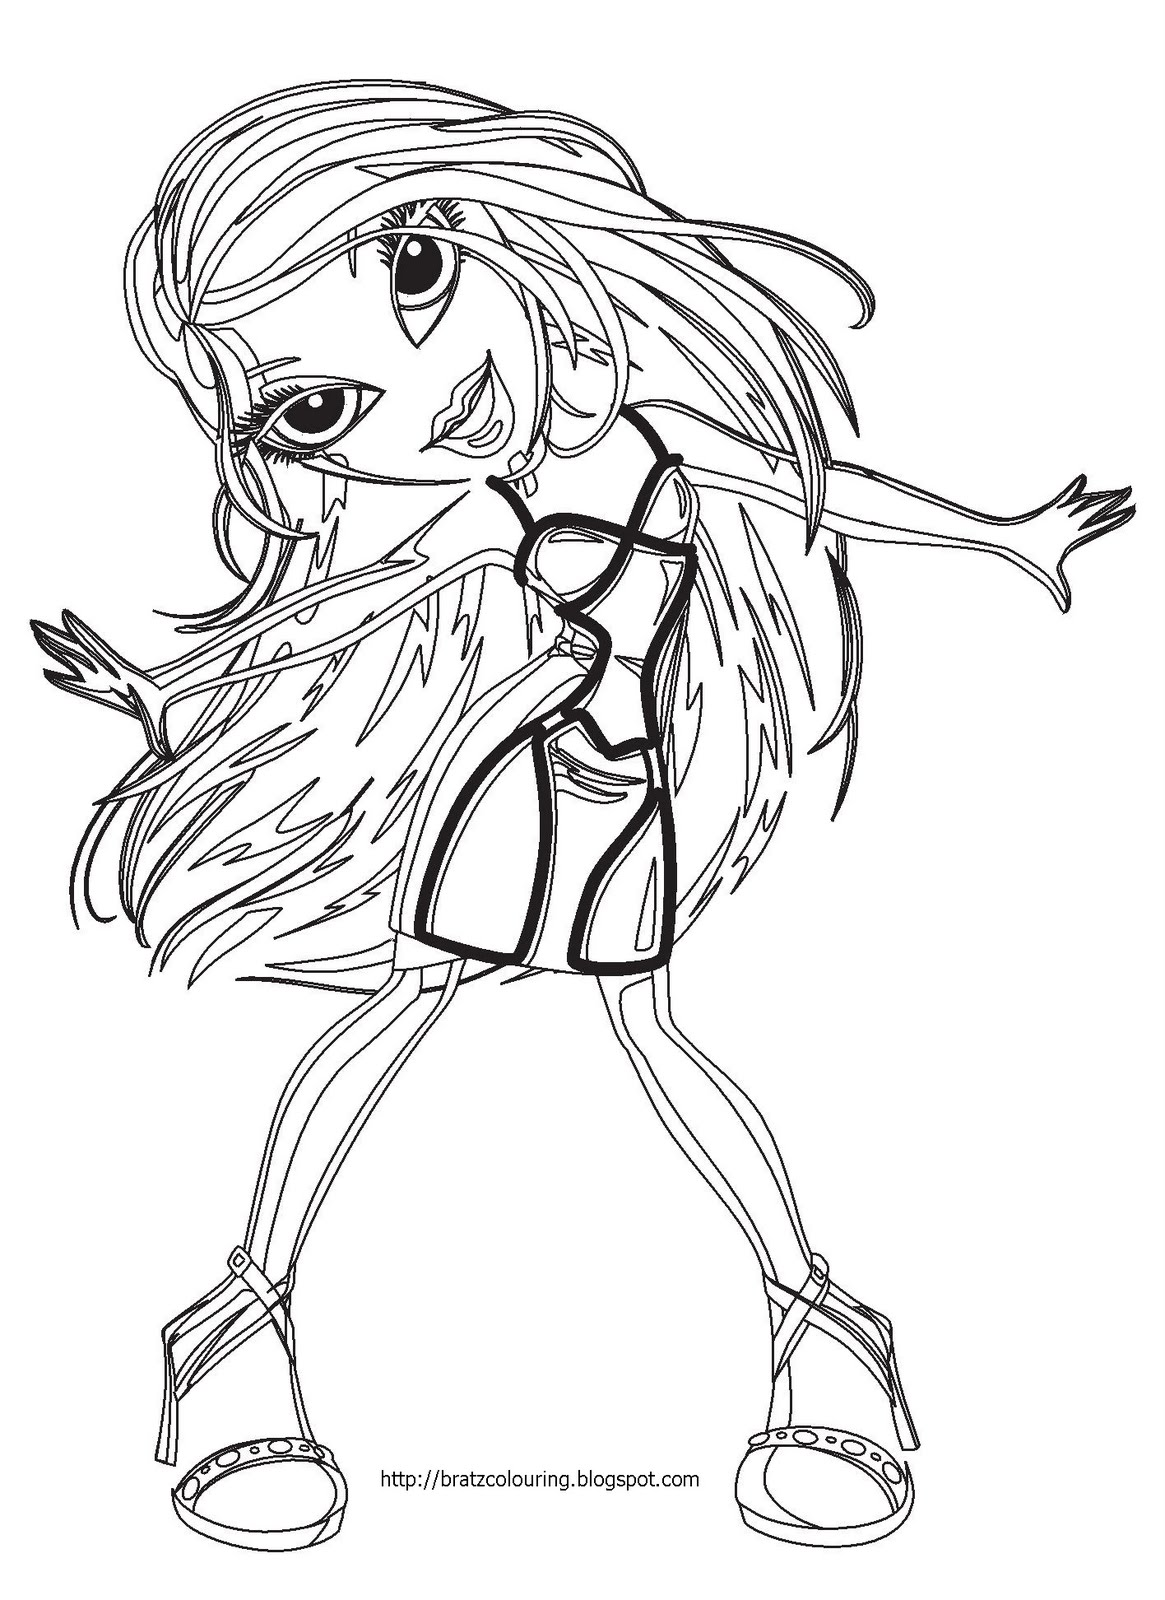 BRATZ COLORING PAGES FREE PRINT